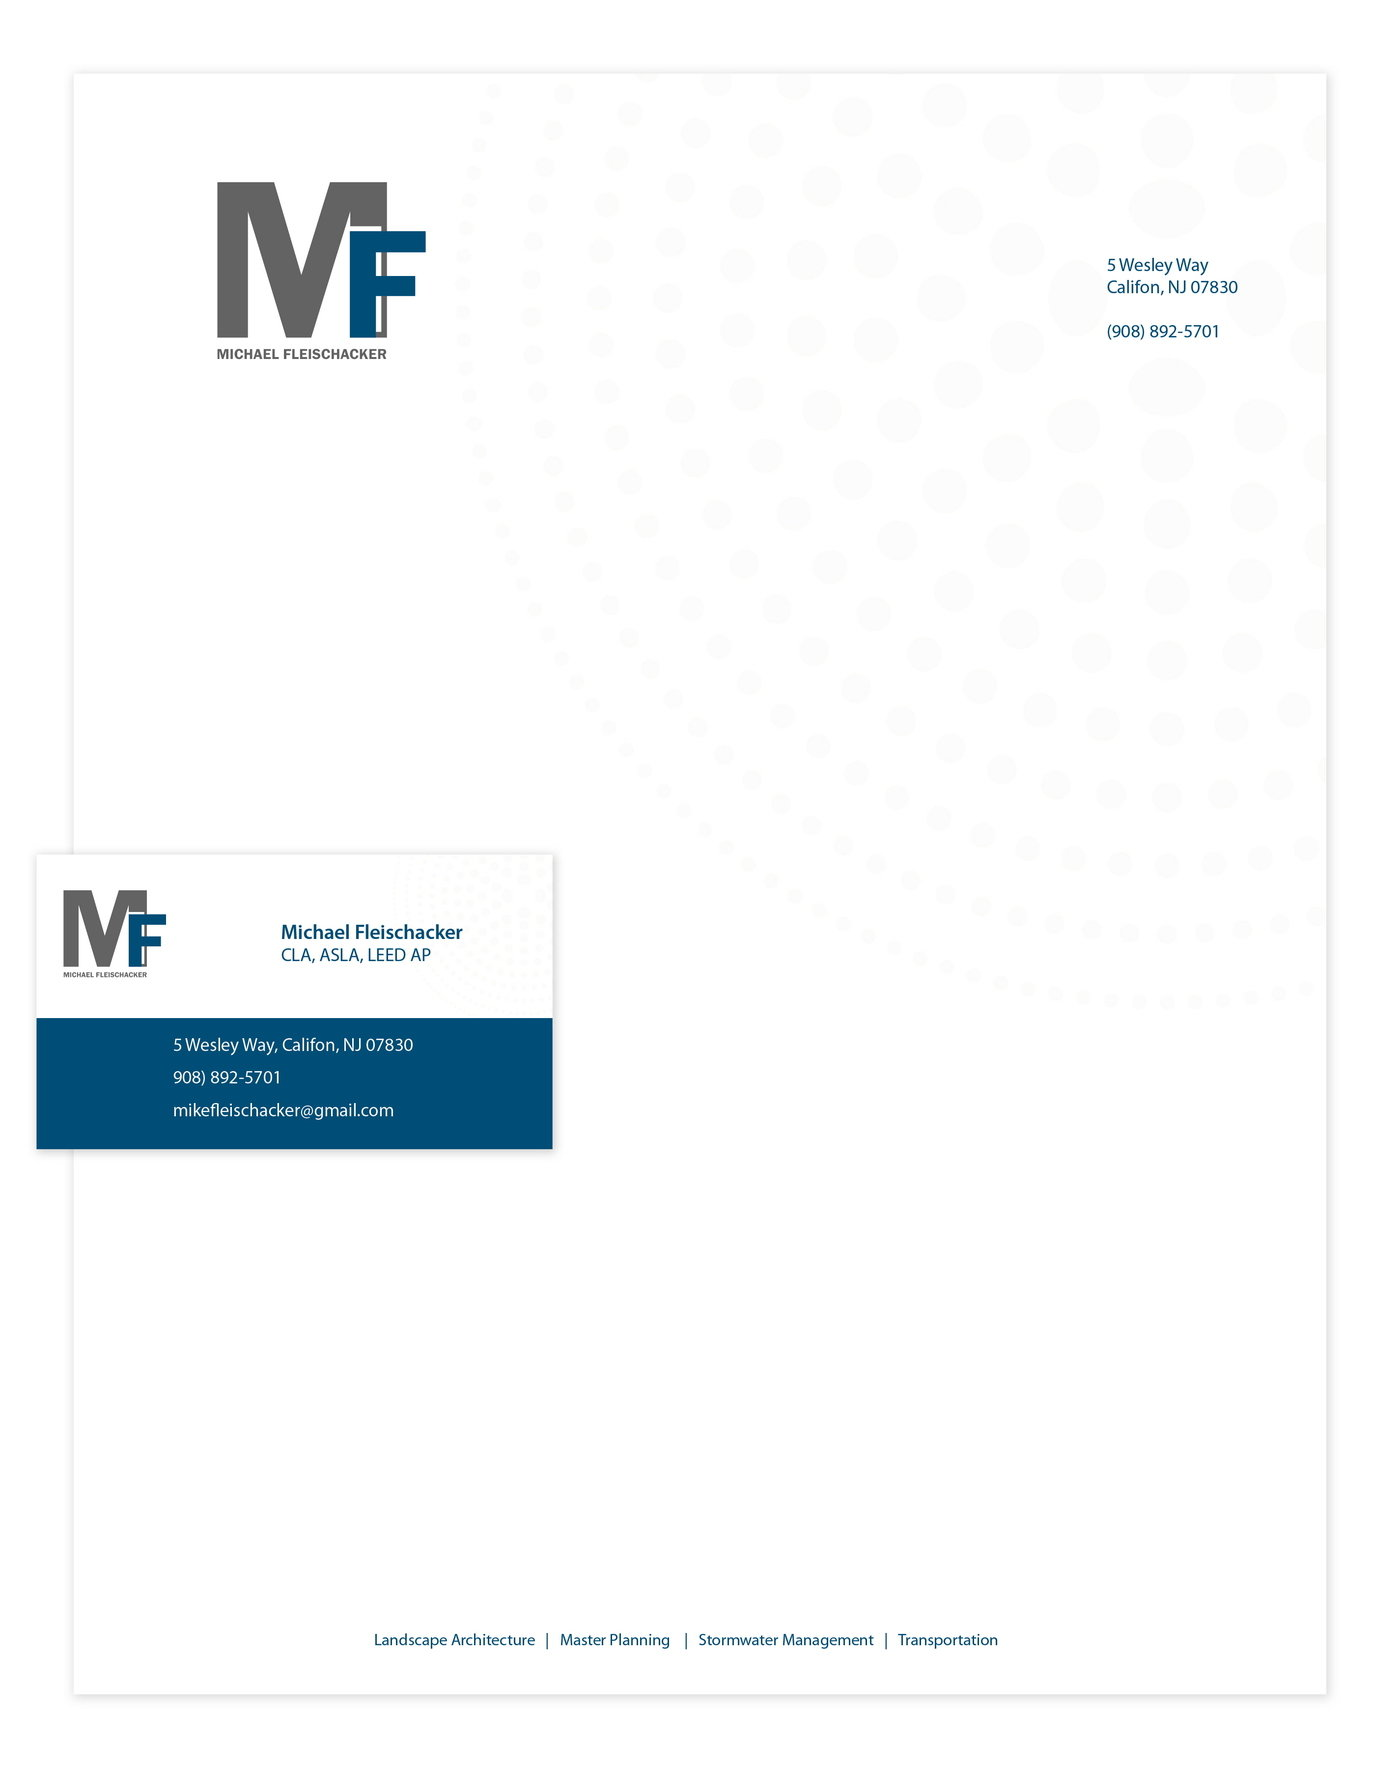 Letterhead and business cards choice image free business cards letterhead and business cards by carla short at coroflot michael fleischacker letterhead and business card michael magicingreecefo Image collections